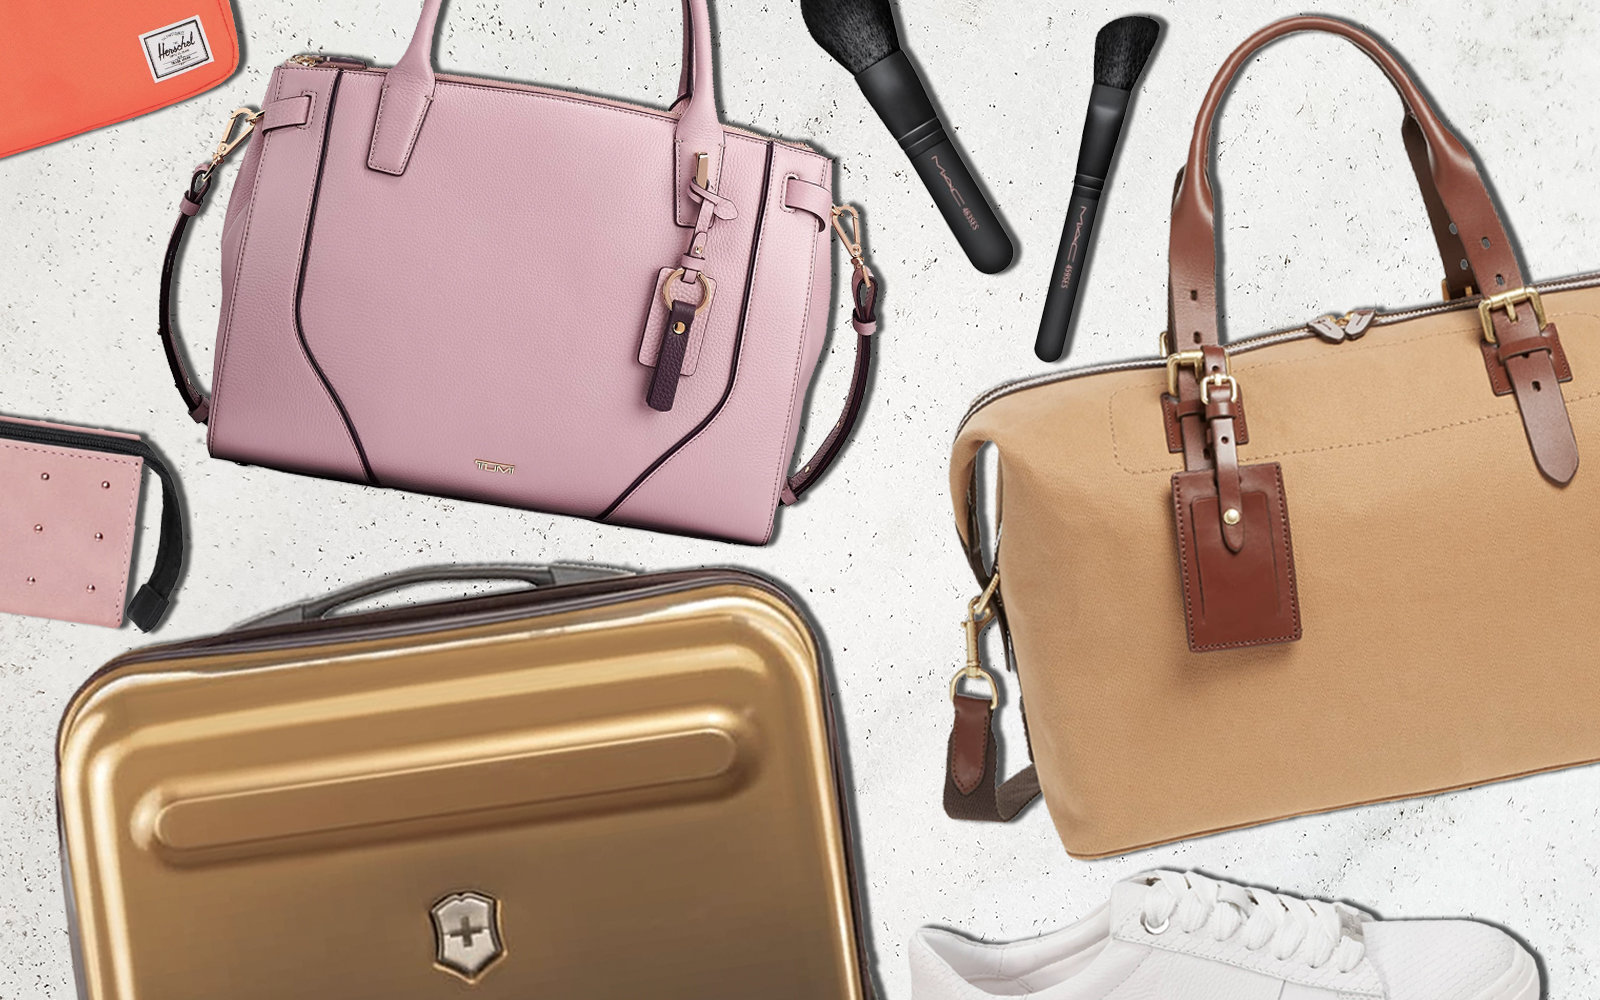 Best Travel Deals From the Nordstrom Sale